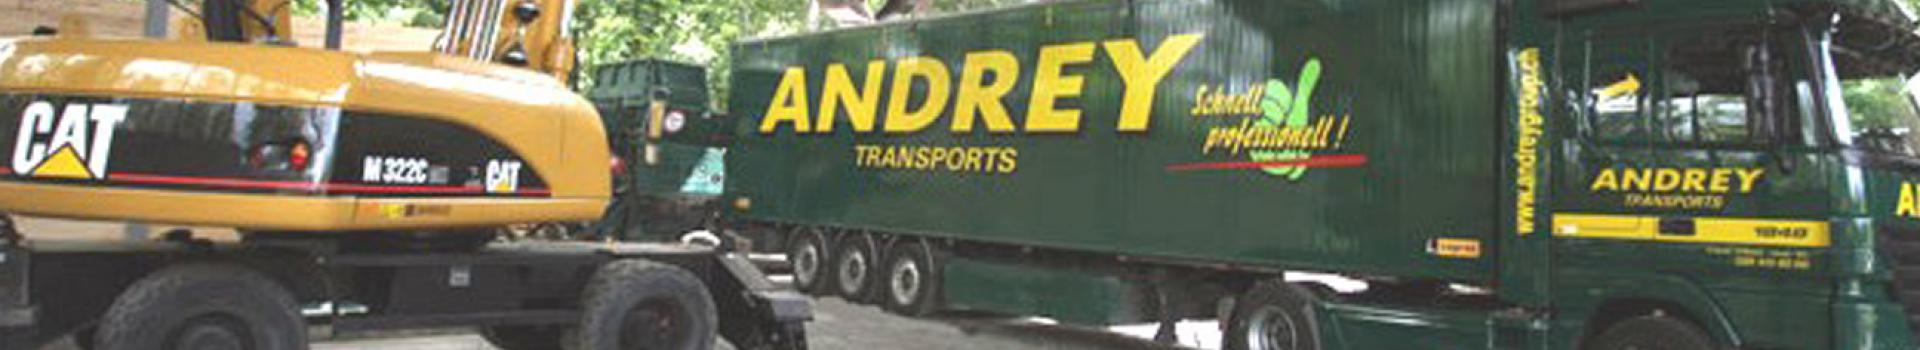 Recyclage andrey group